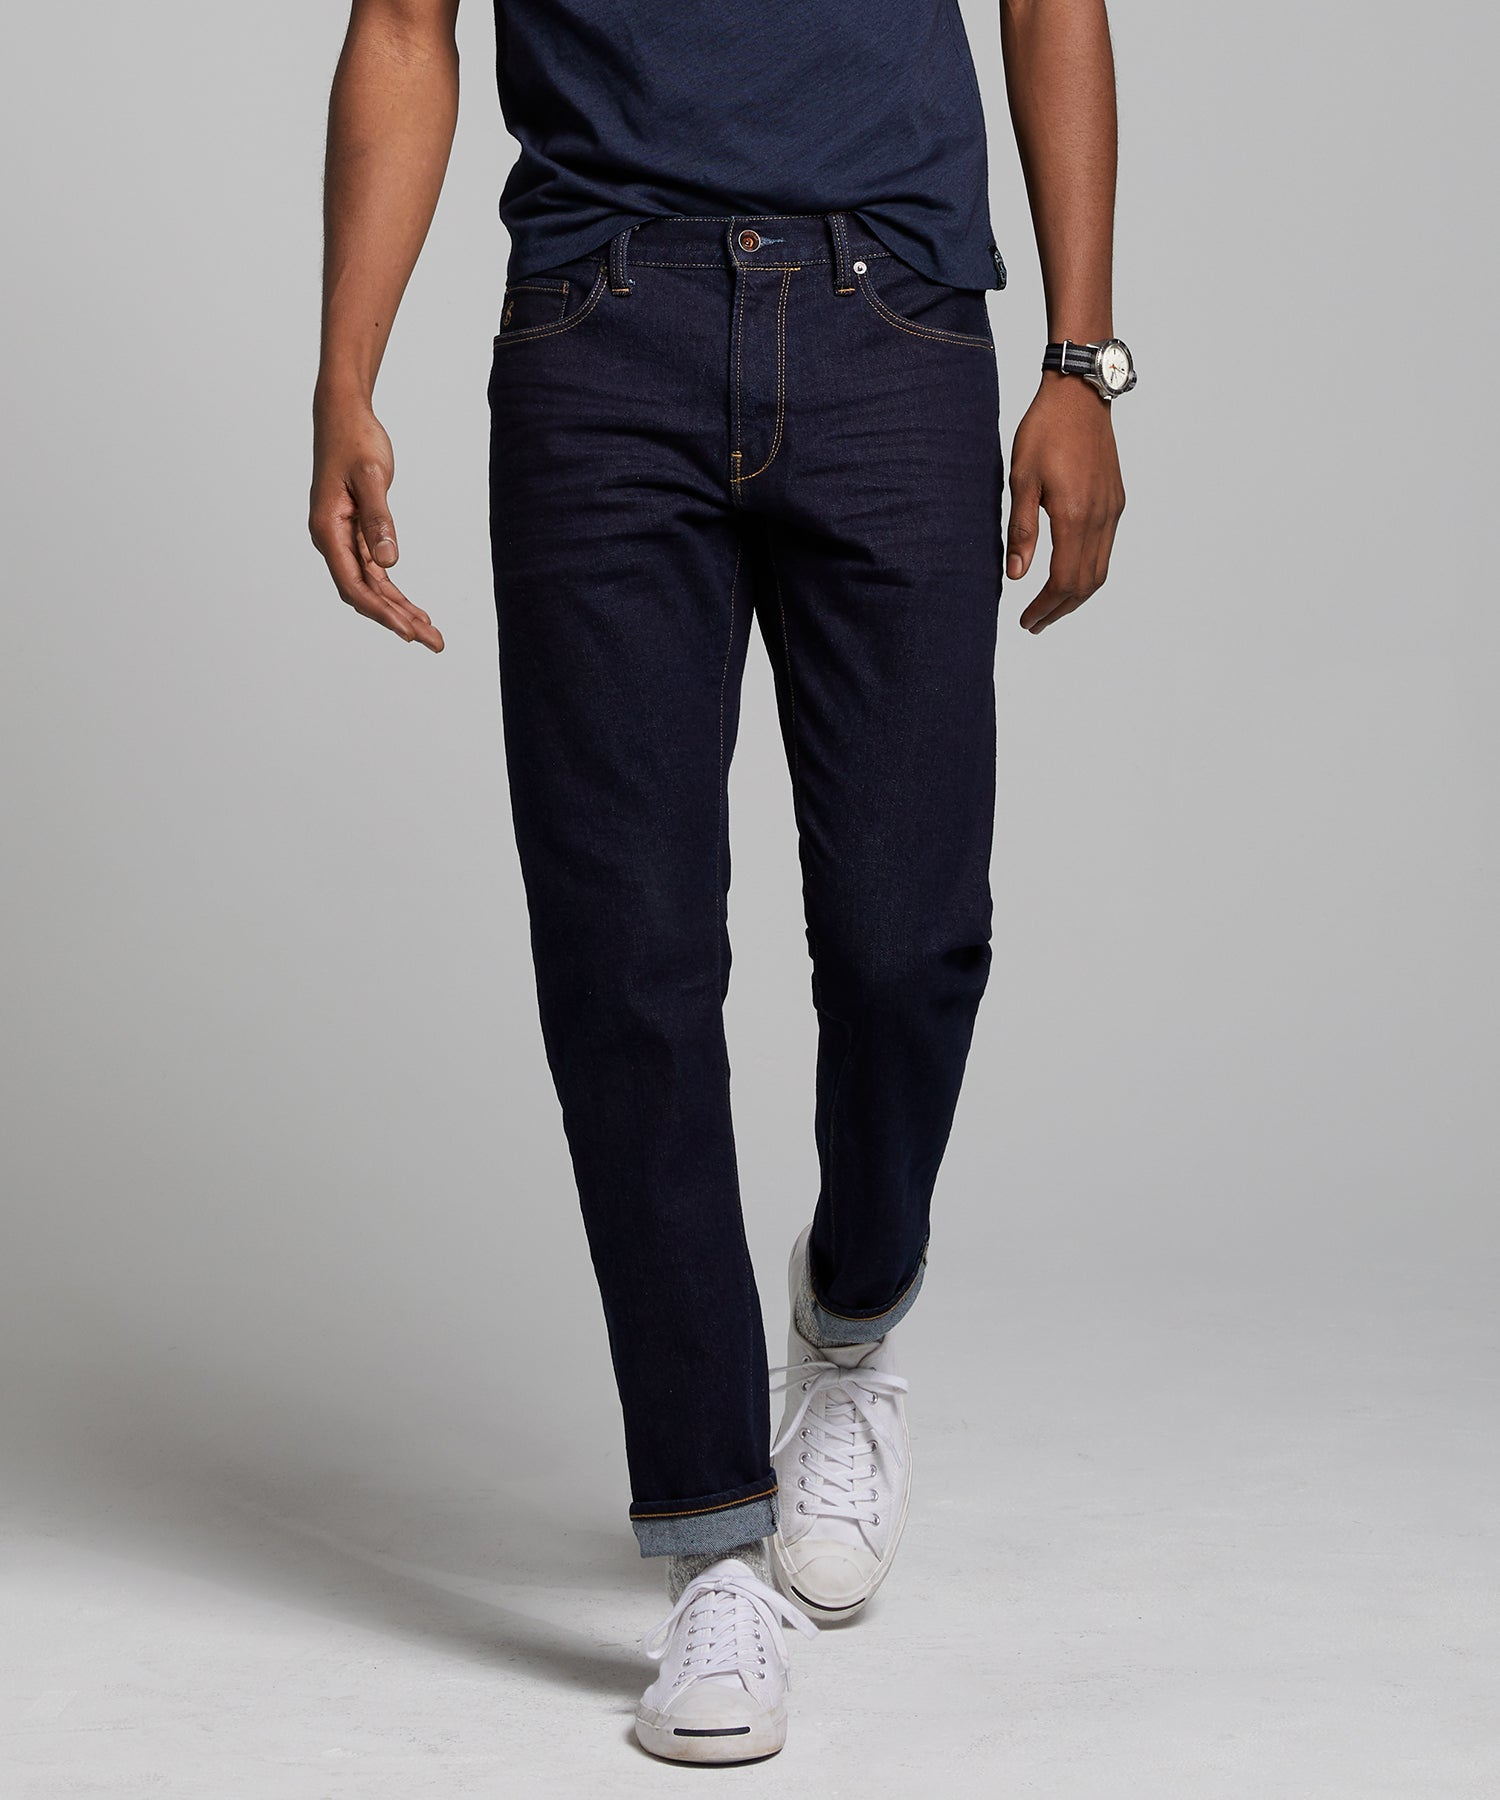 Slim Fit Stretch Jean in Indigo Rinse